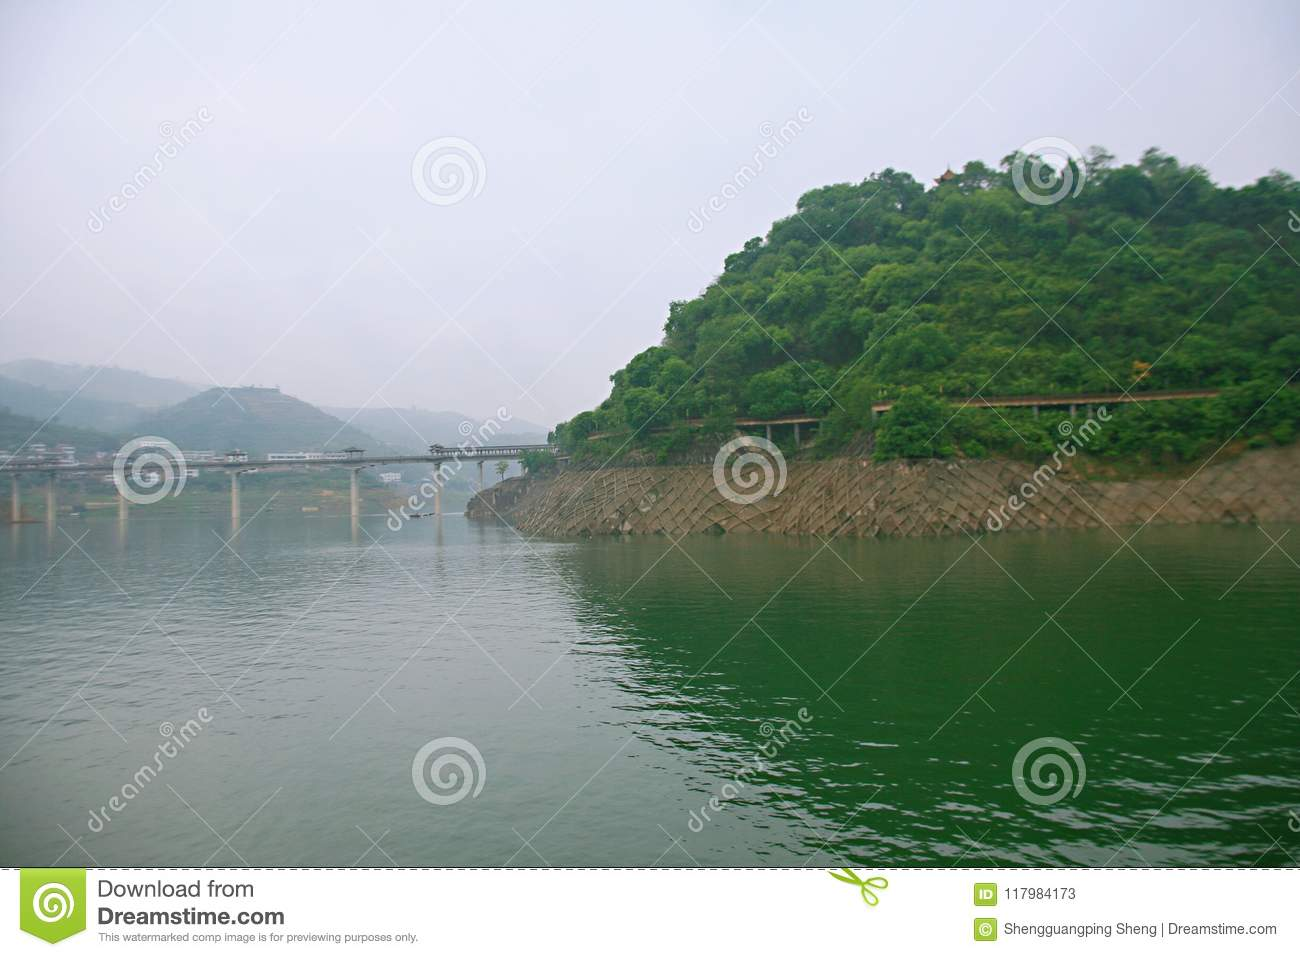 The Three Gorges of the Yangtze River